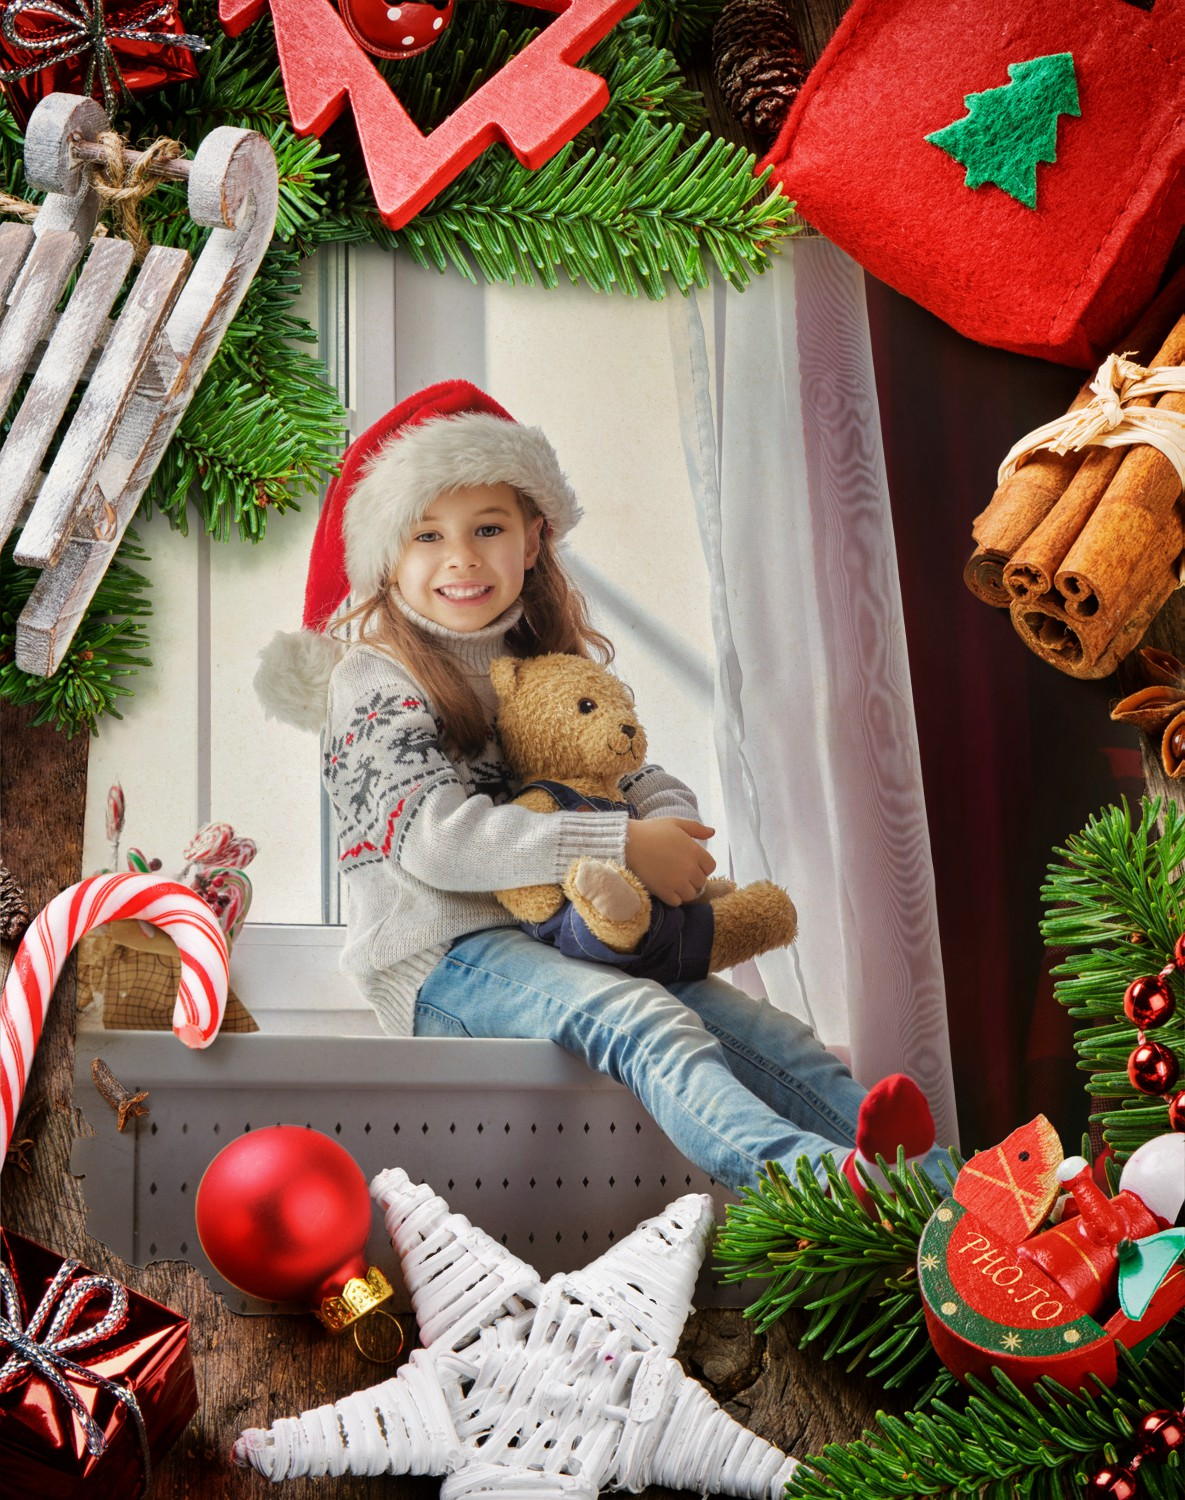 Christmas card made of photo of little girl in Xmas Santa hat